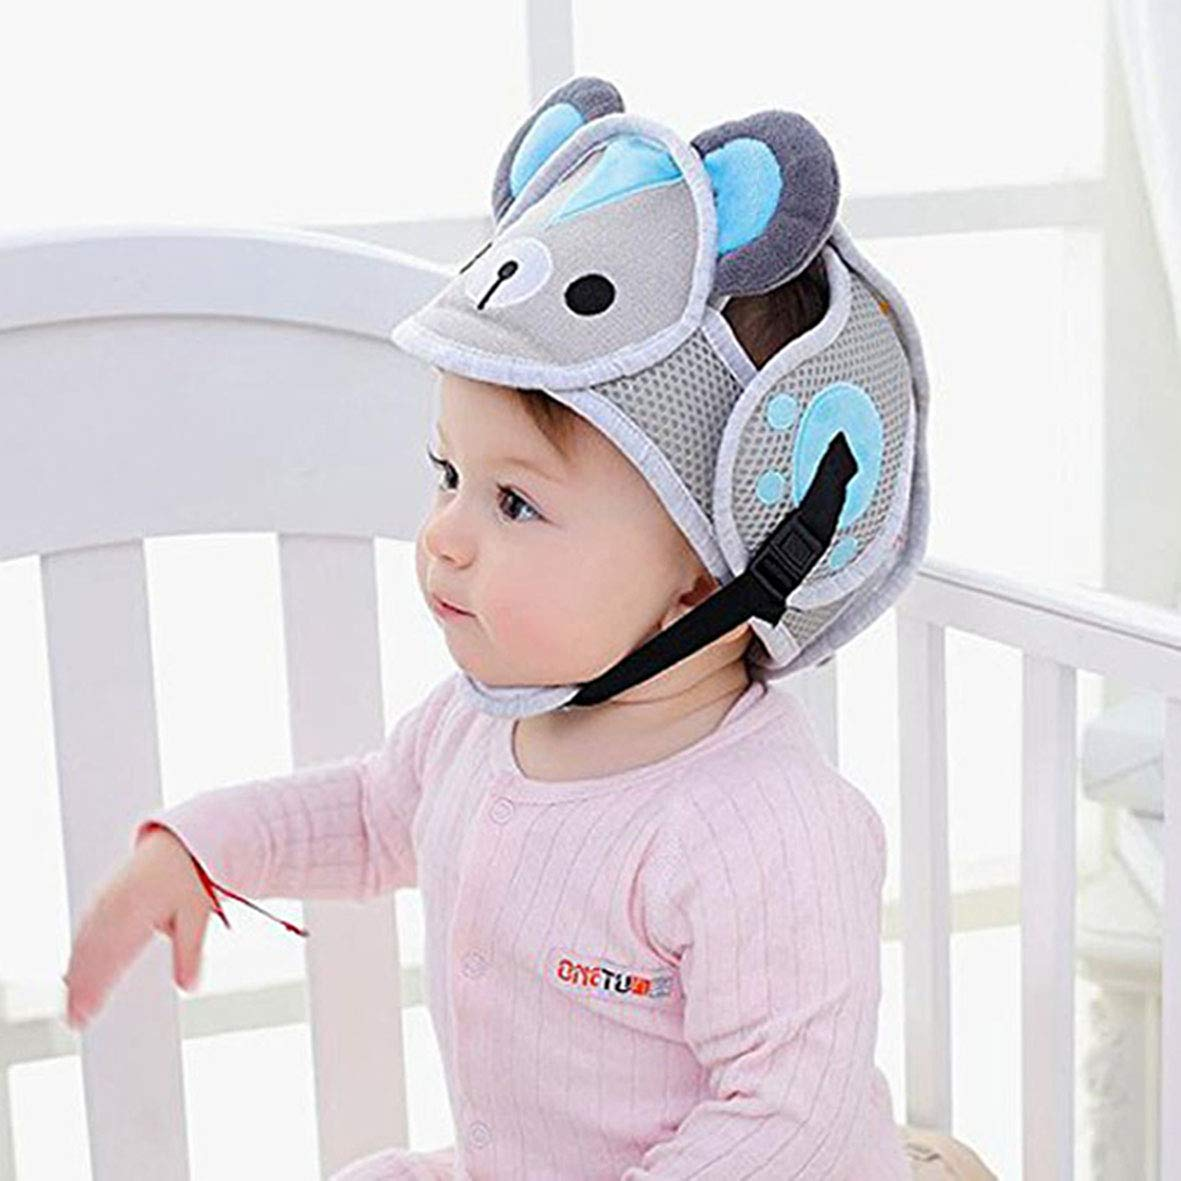 Baby Safety Helmet Head Protection Toddler Kids Adjustable Soft Headguard for Walking Crawling